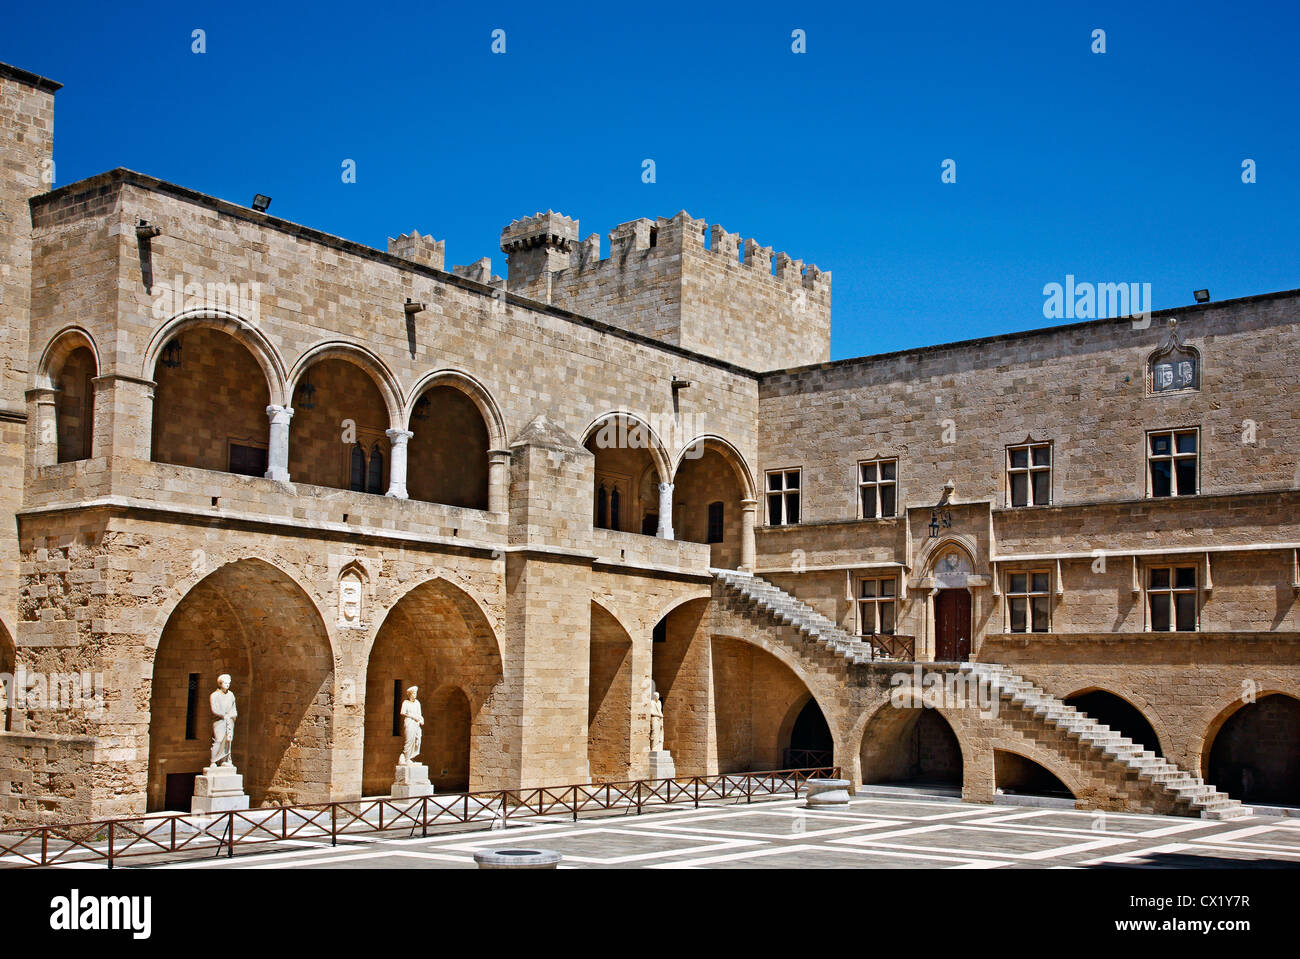 The inner court at the Palace of the Grand Master, medieval town of Rhodes island, Dodecanese, Greece. - Stock Image